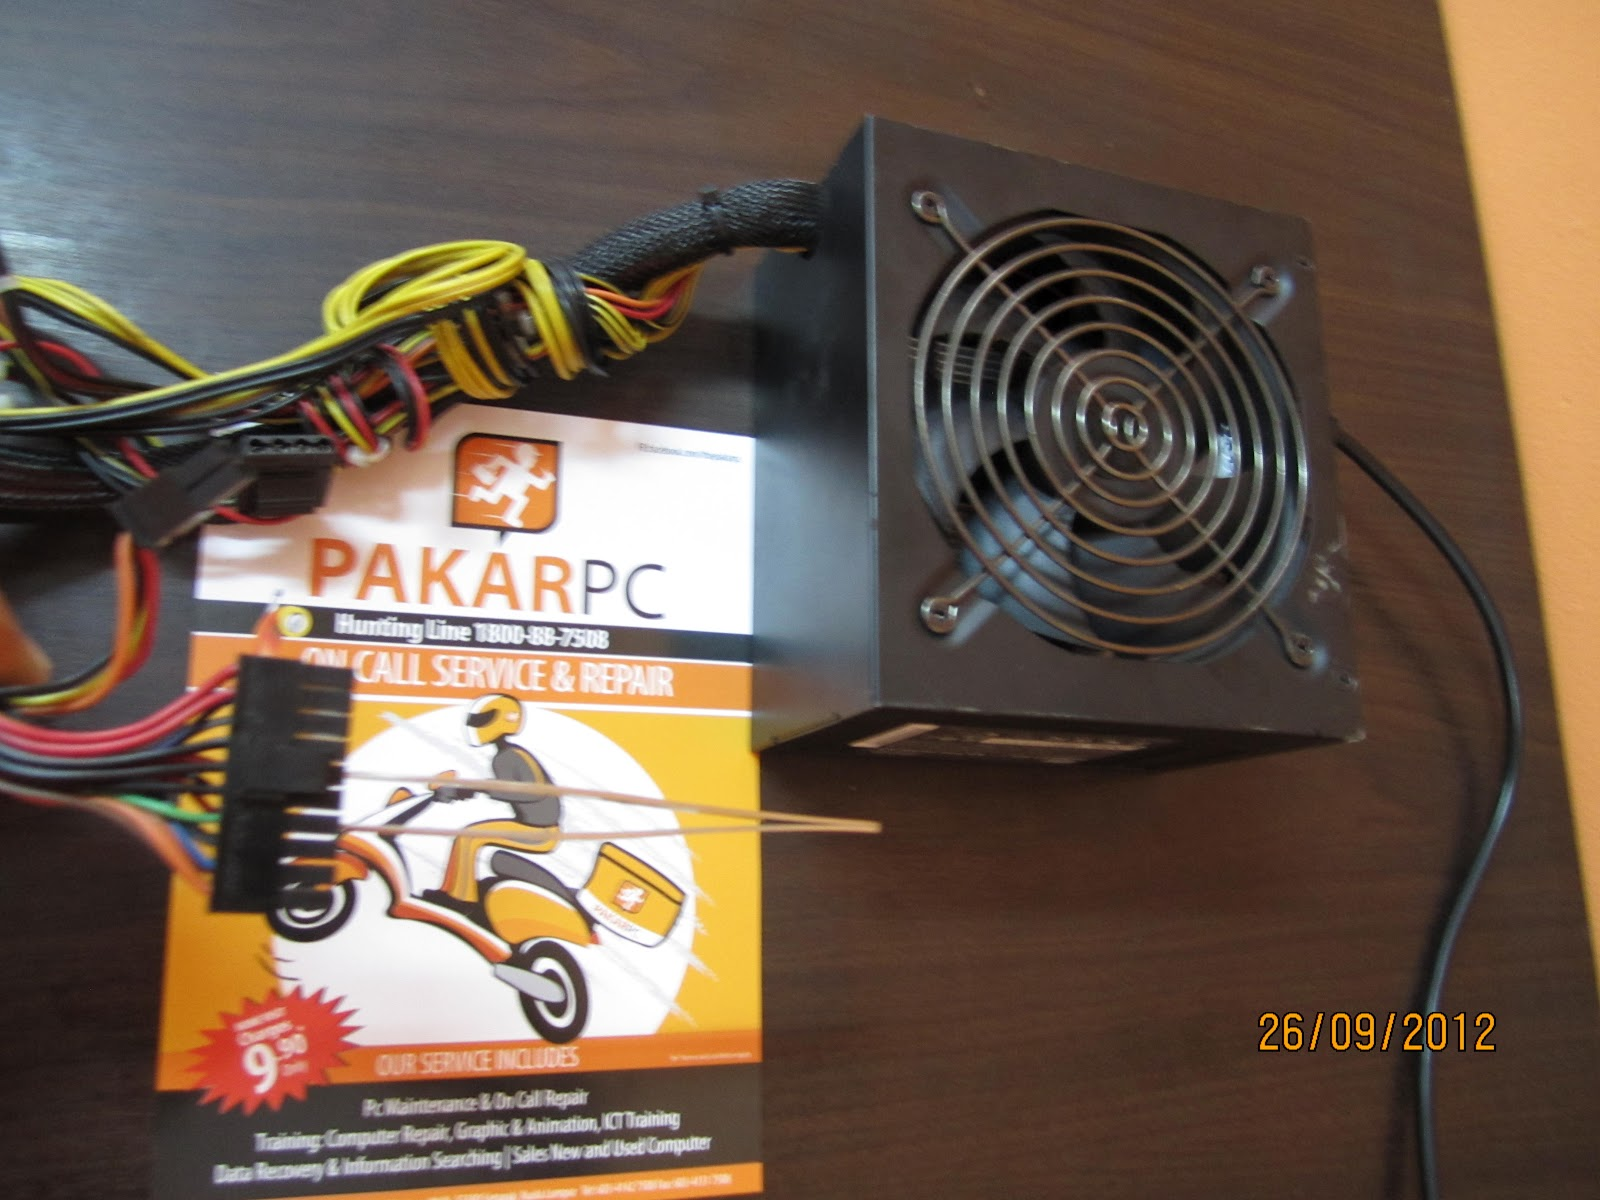 Test Power Supply Unit condition without attach to Motherboard ...